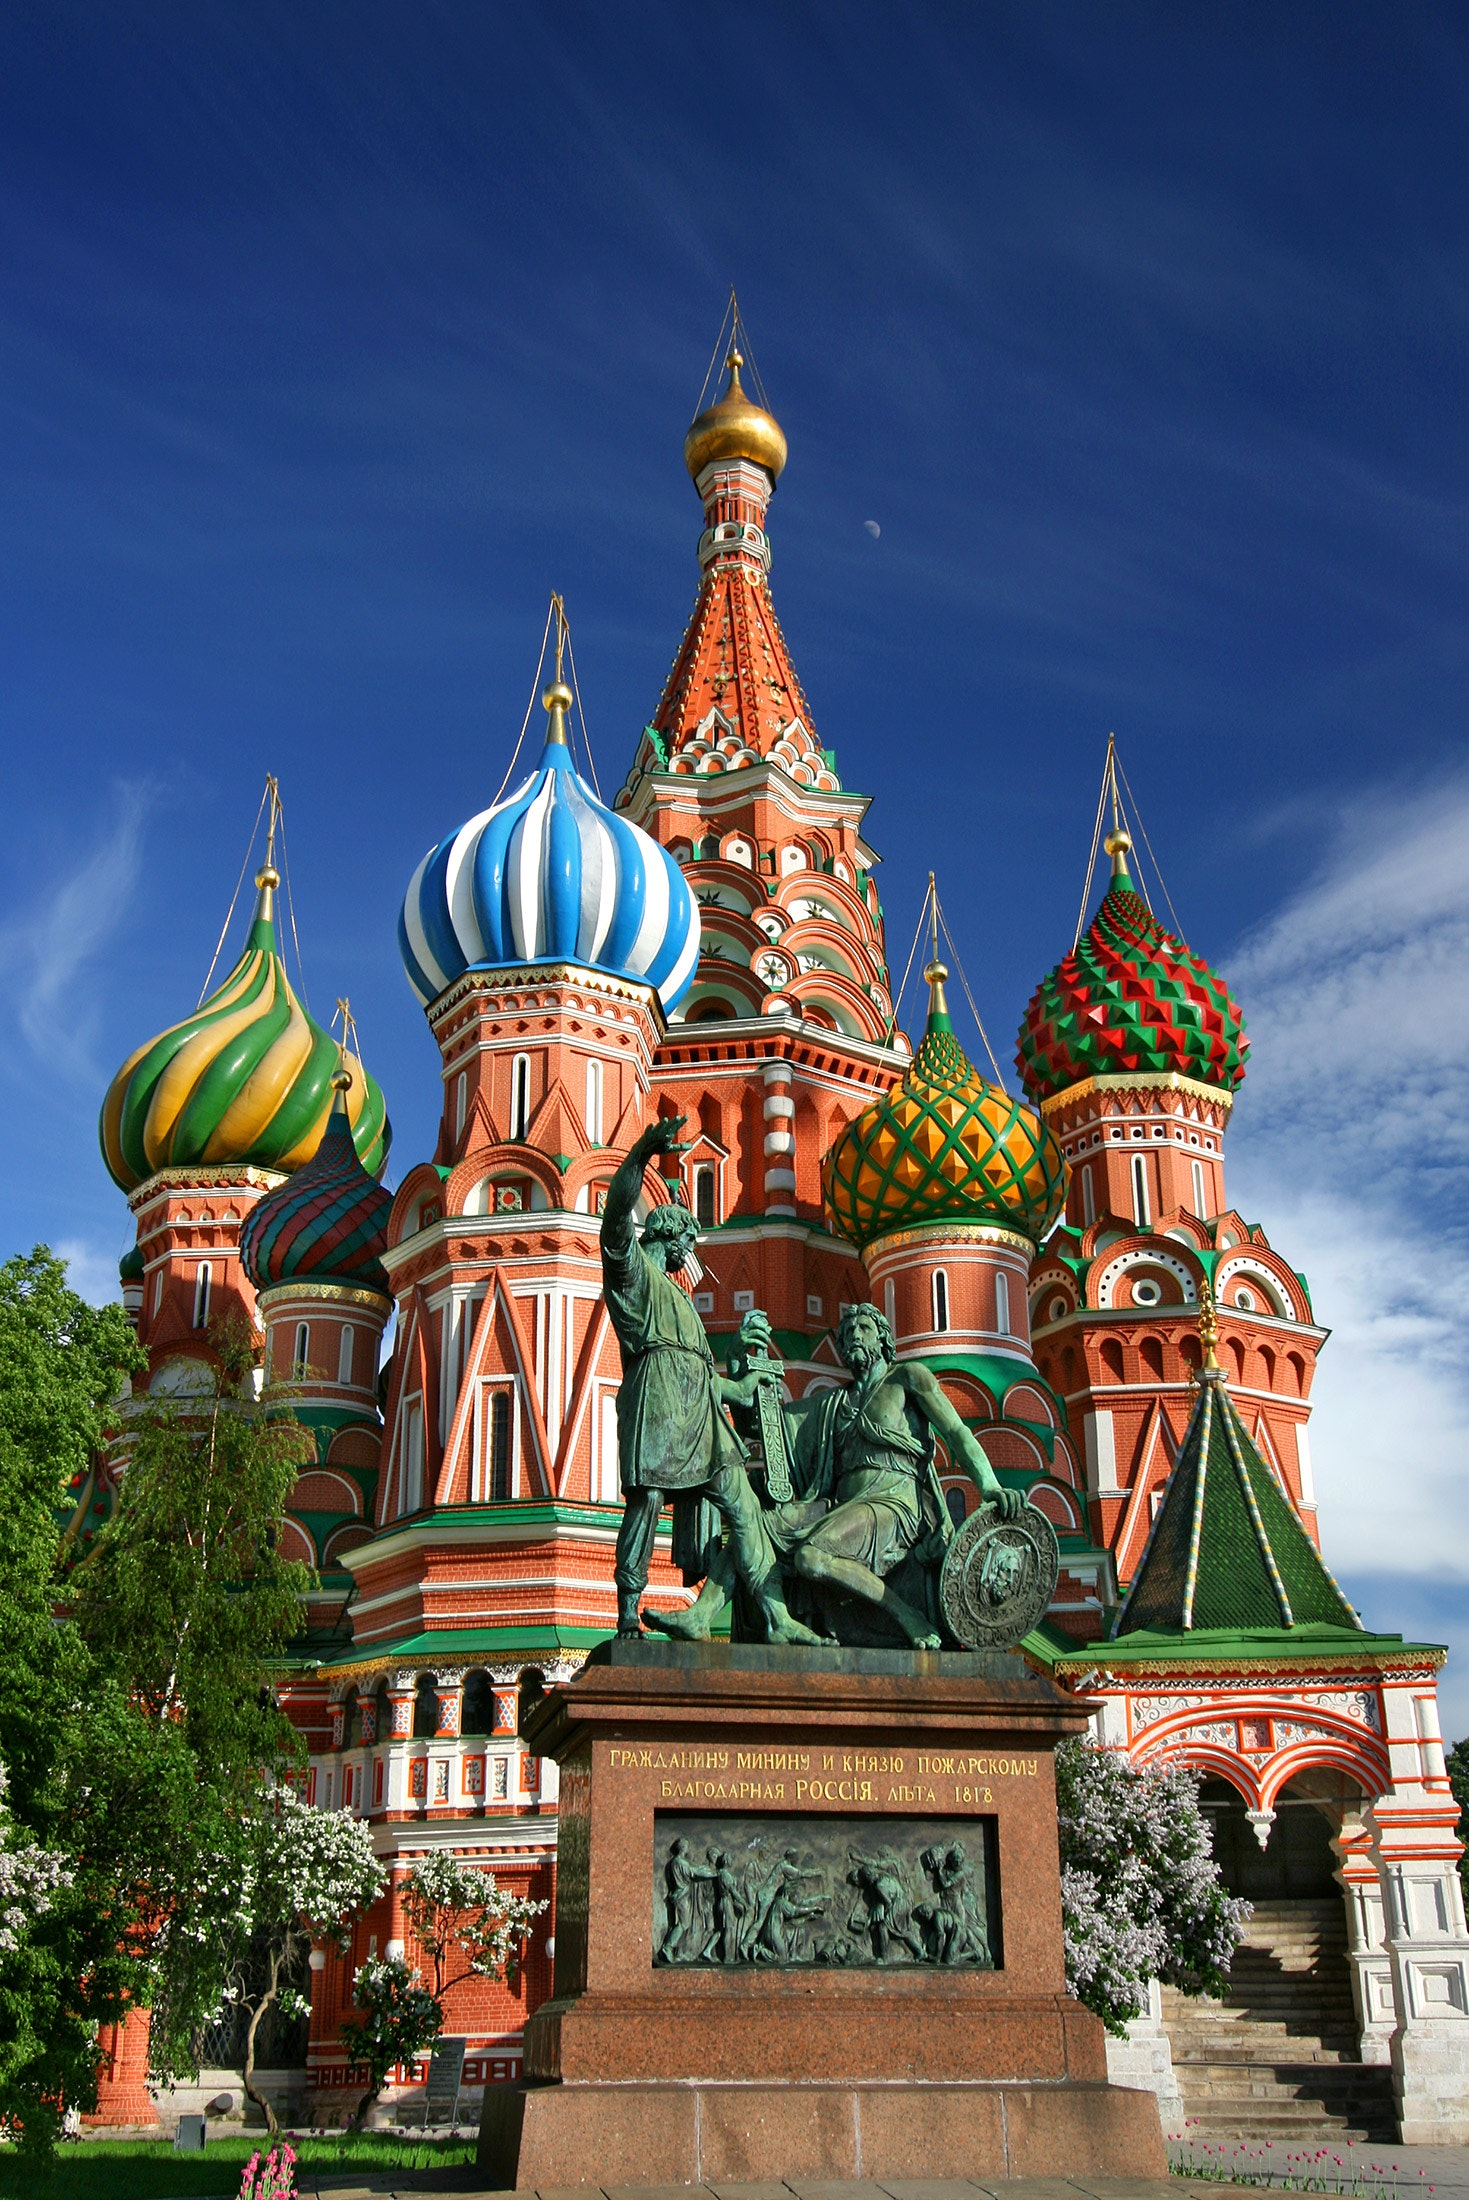 Saint Basil's Cathedral, Ancient, Monument, Trees, Travel, HQ Photo